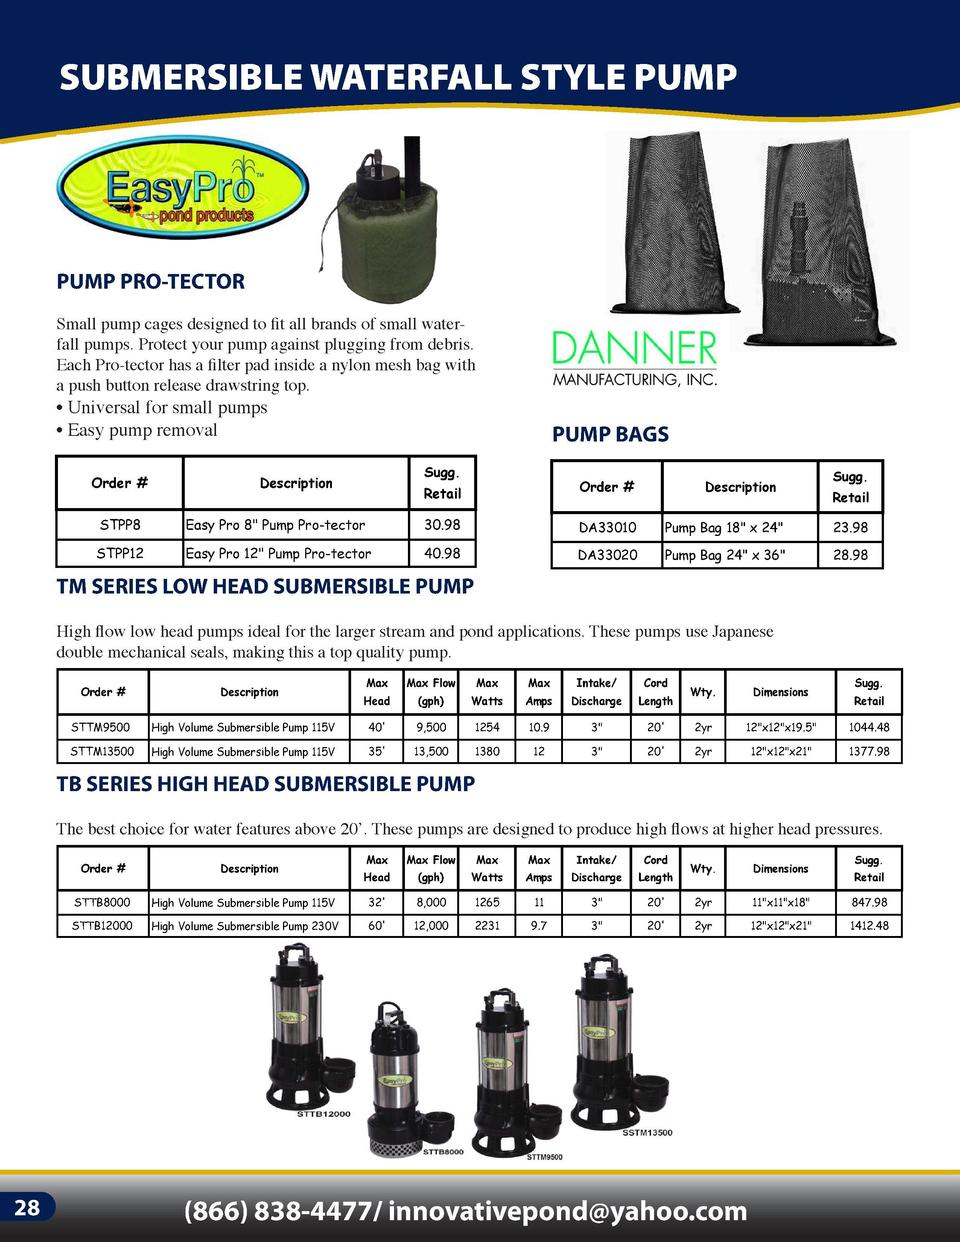 IN-LINE PUMPS  SUBMERSIBLE WATERFALL STYLE PUMP  PUMP PRO-TECTOR  ARTESIAN 2 LOW RPM PUMPS  Small pump cages designed to f...